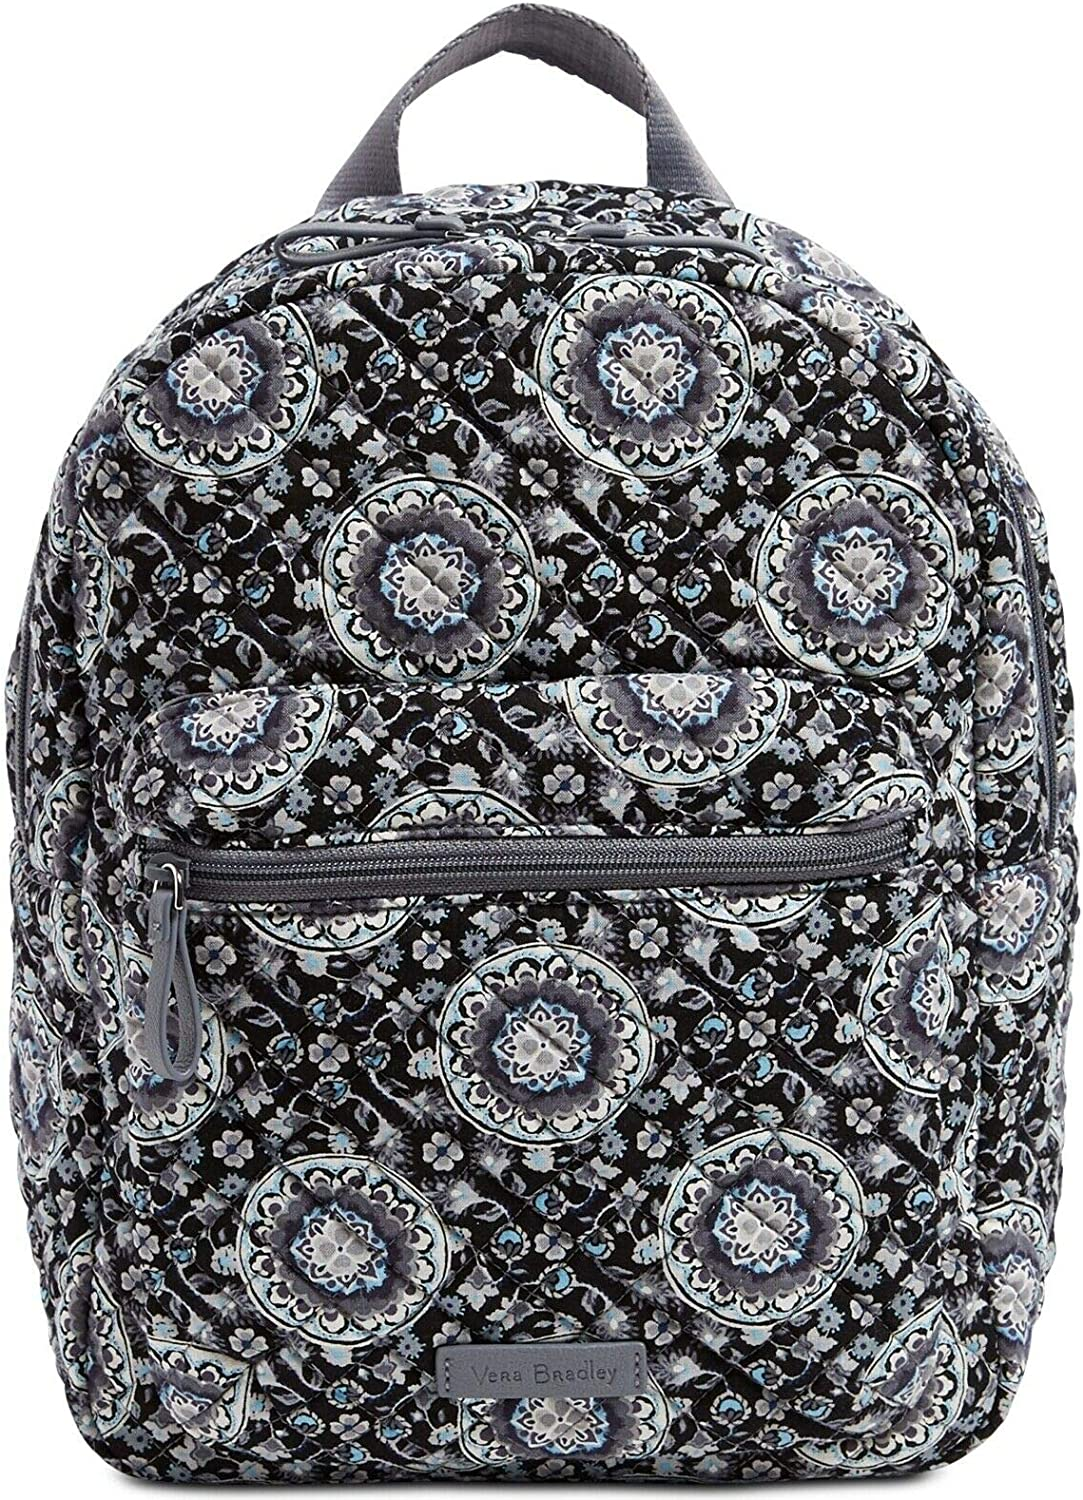 Vera Bradley Womens Iconic Leighton Quilted Floral Backpack Gray Small